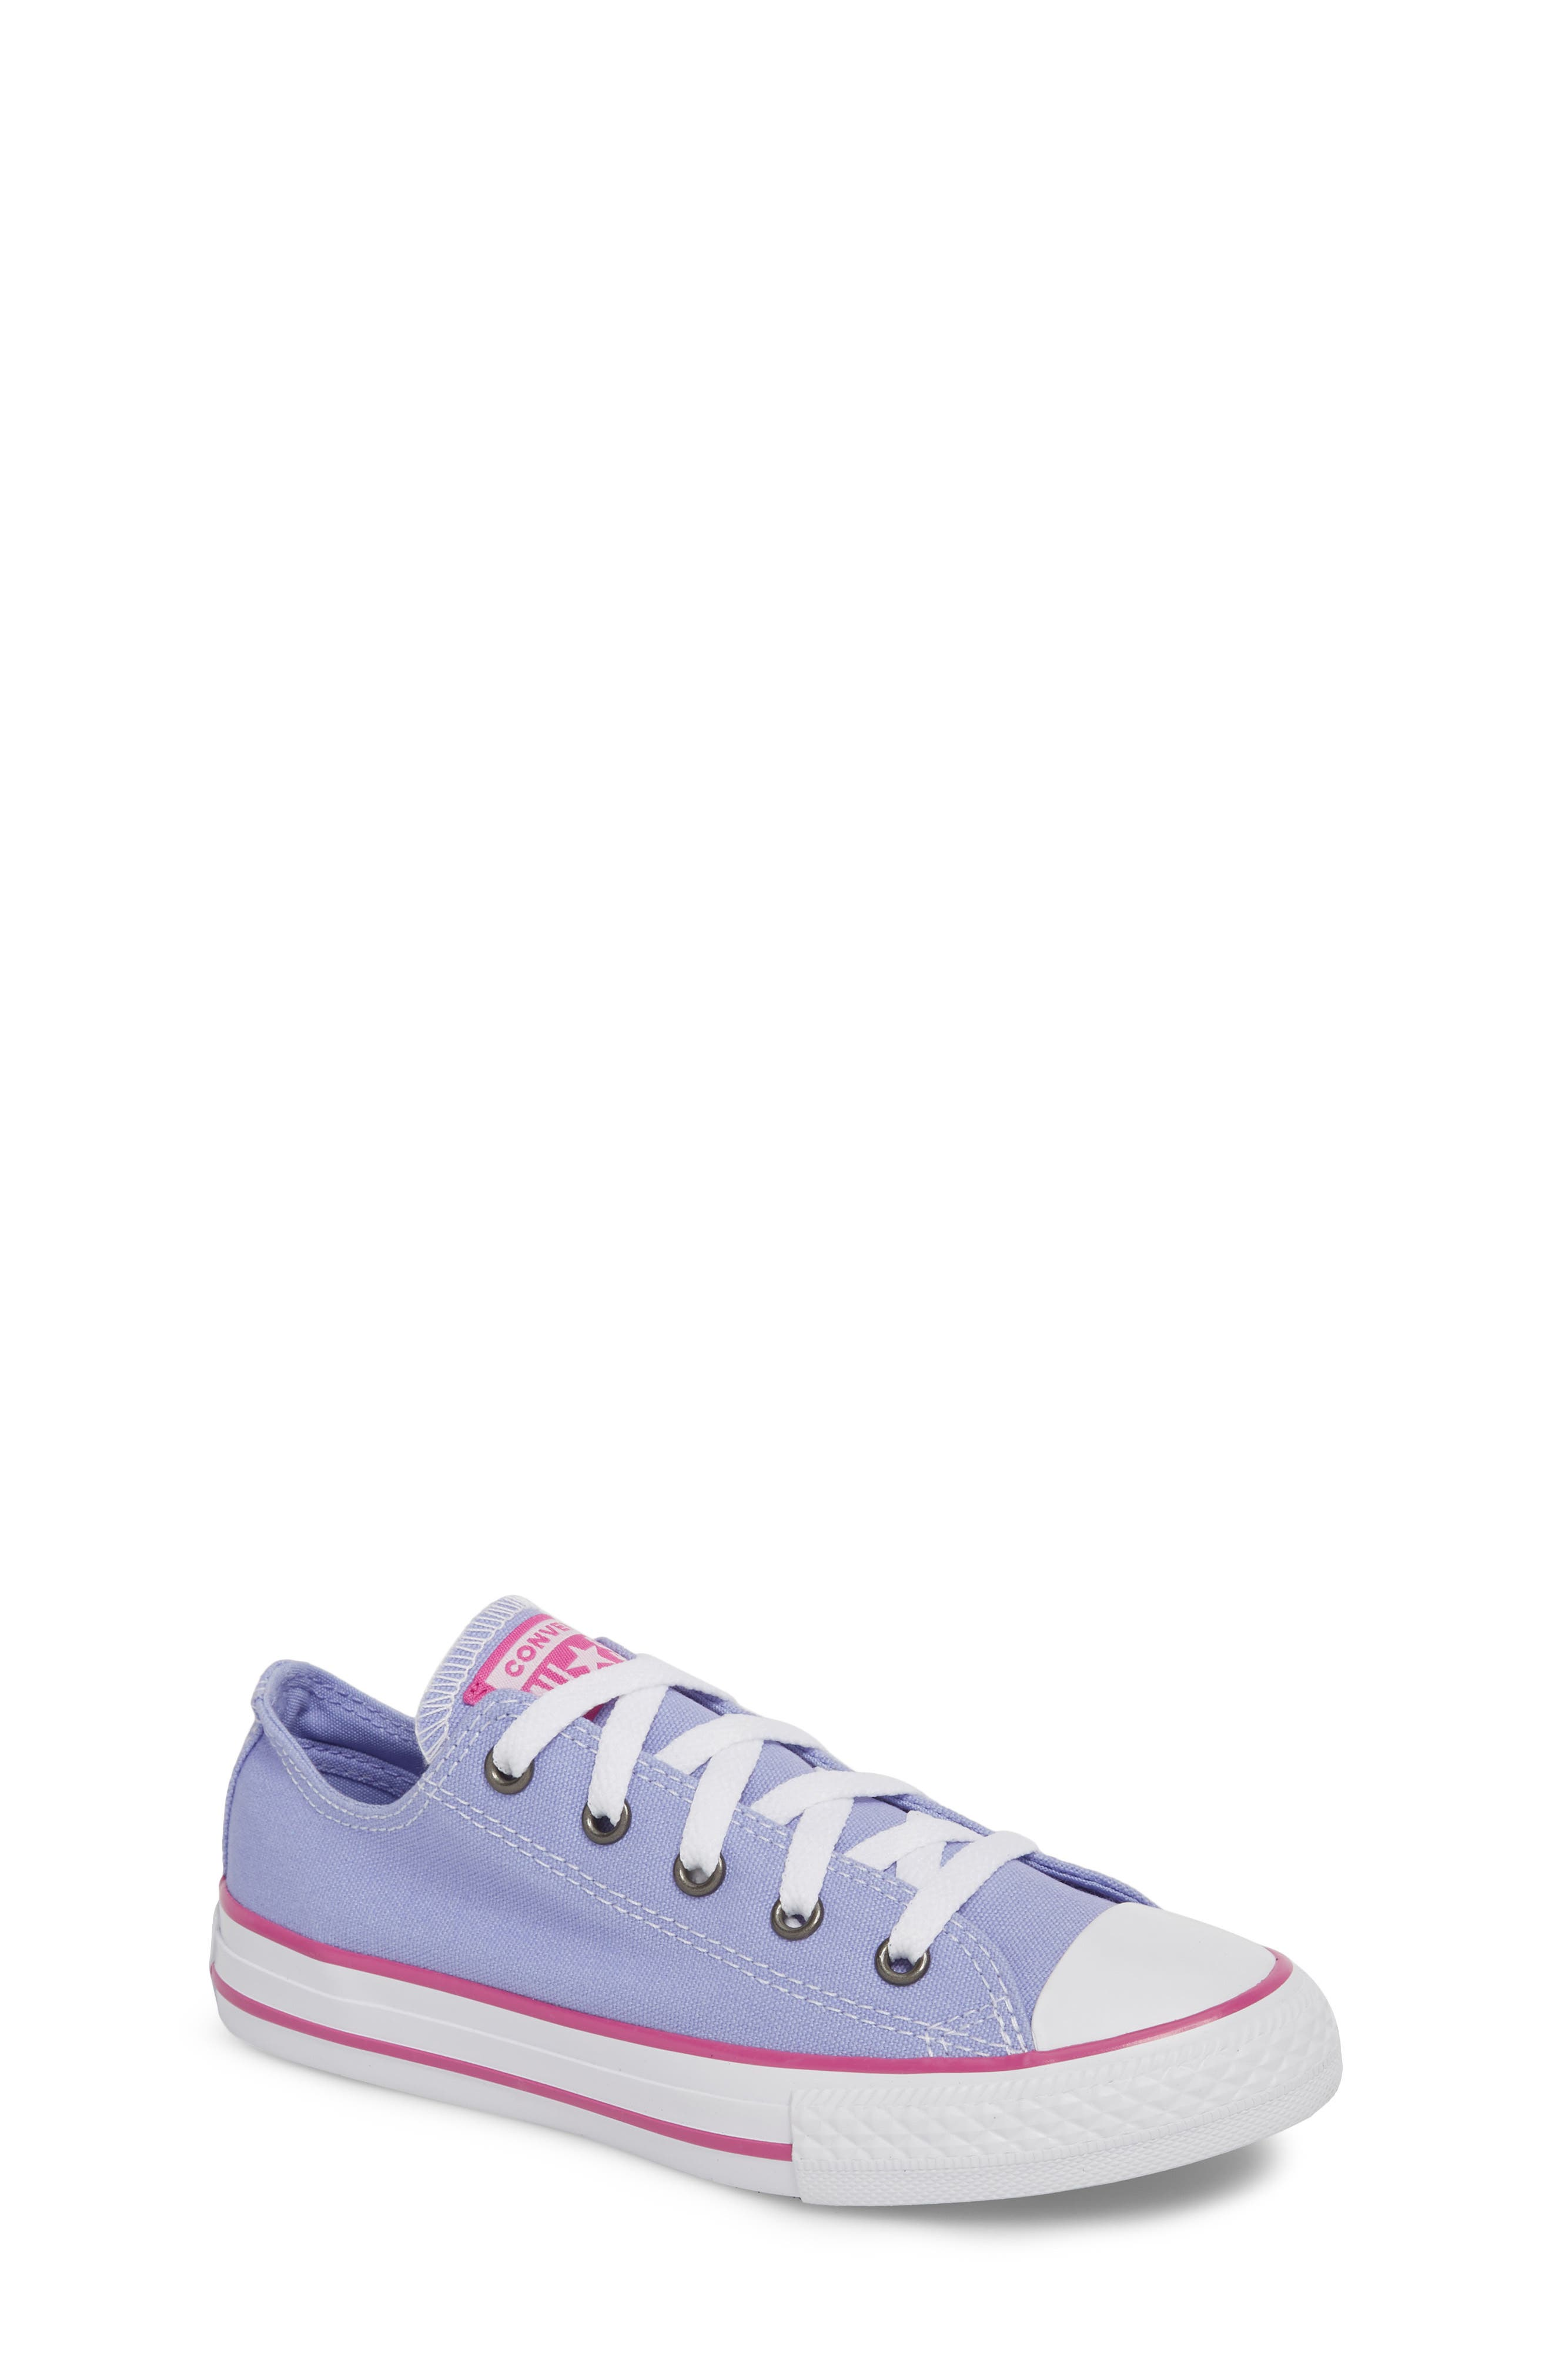 All Star<sup>®</sup> Low Top Sneaker,                             Main thumbnail 1, color,                             Twilight Purple